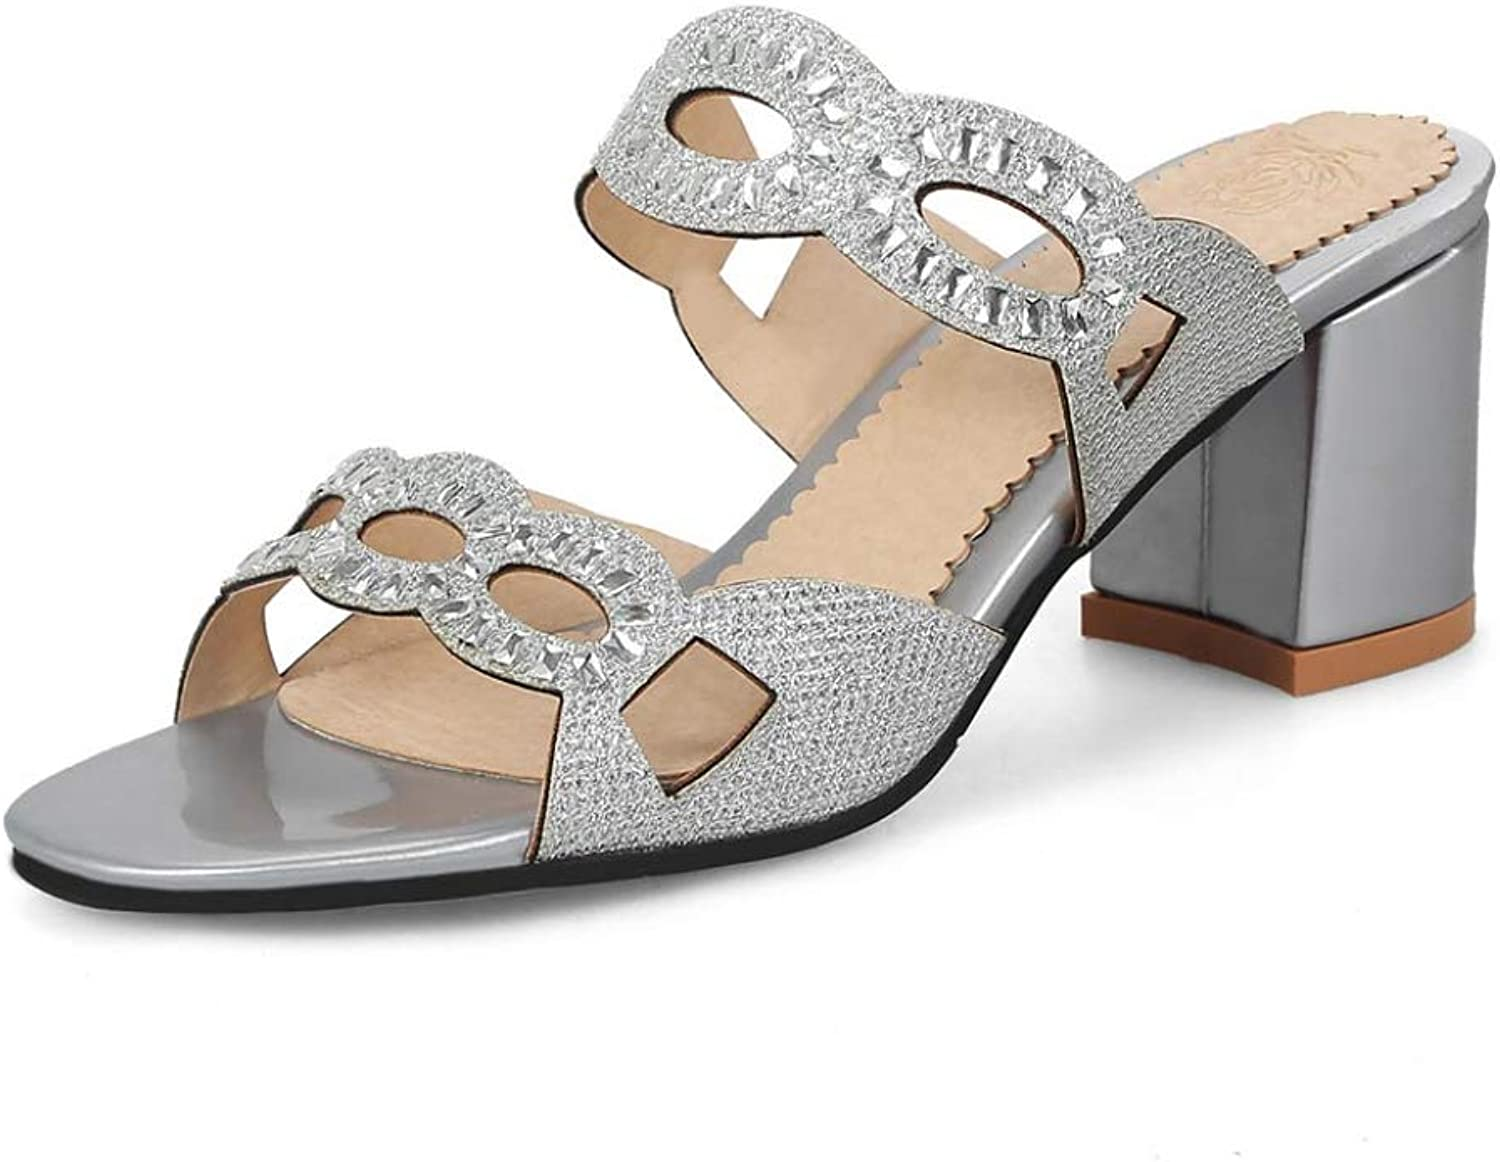 T-JULY Fashion Women's Sandal Crystal Open Toe High Heels Summer Fashion Solid color Comfortable Thick Heel Outdoor Ladies shoes